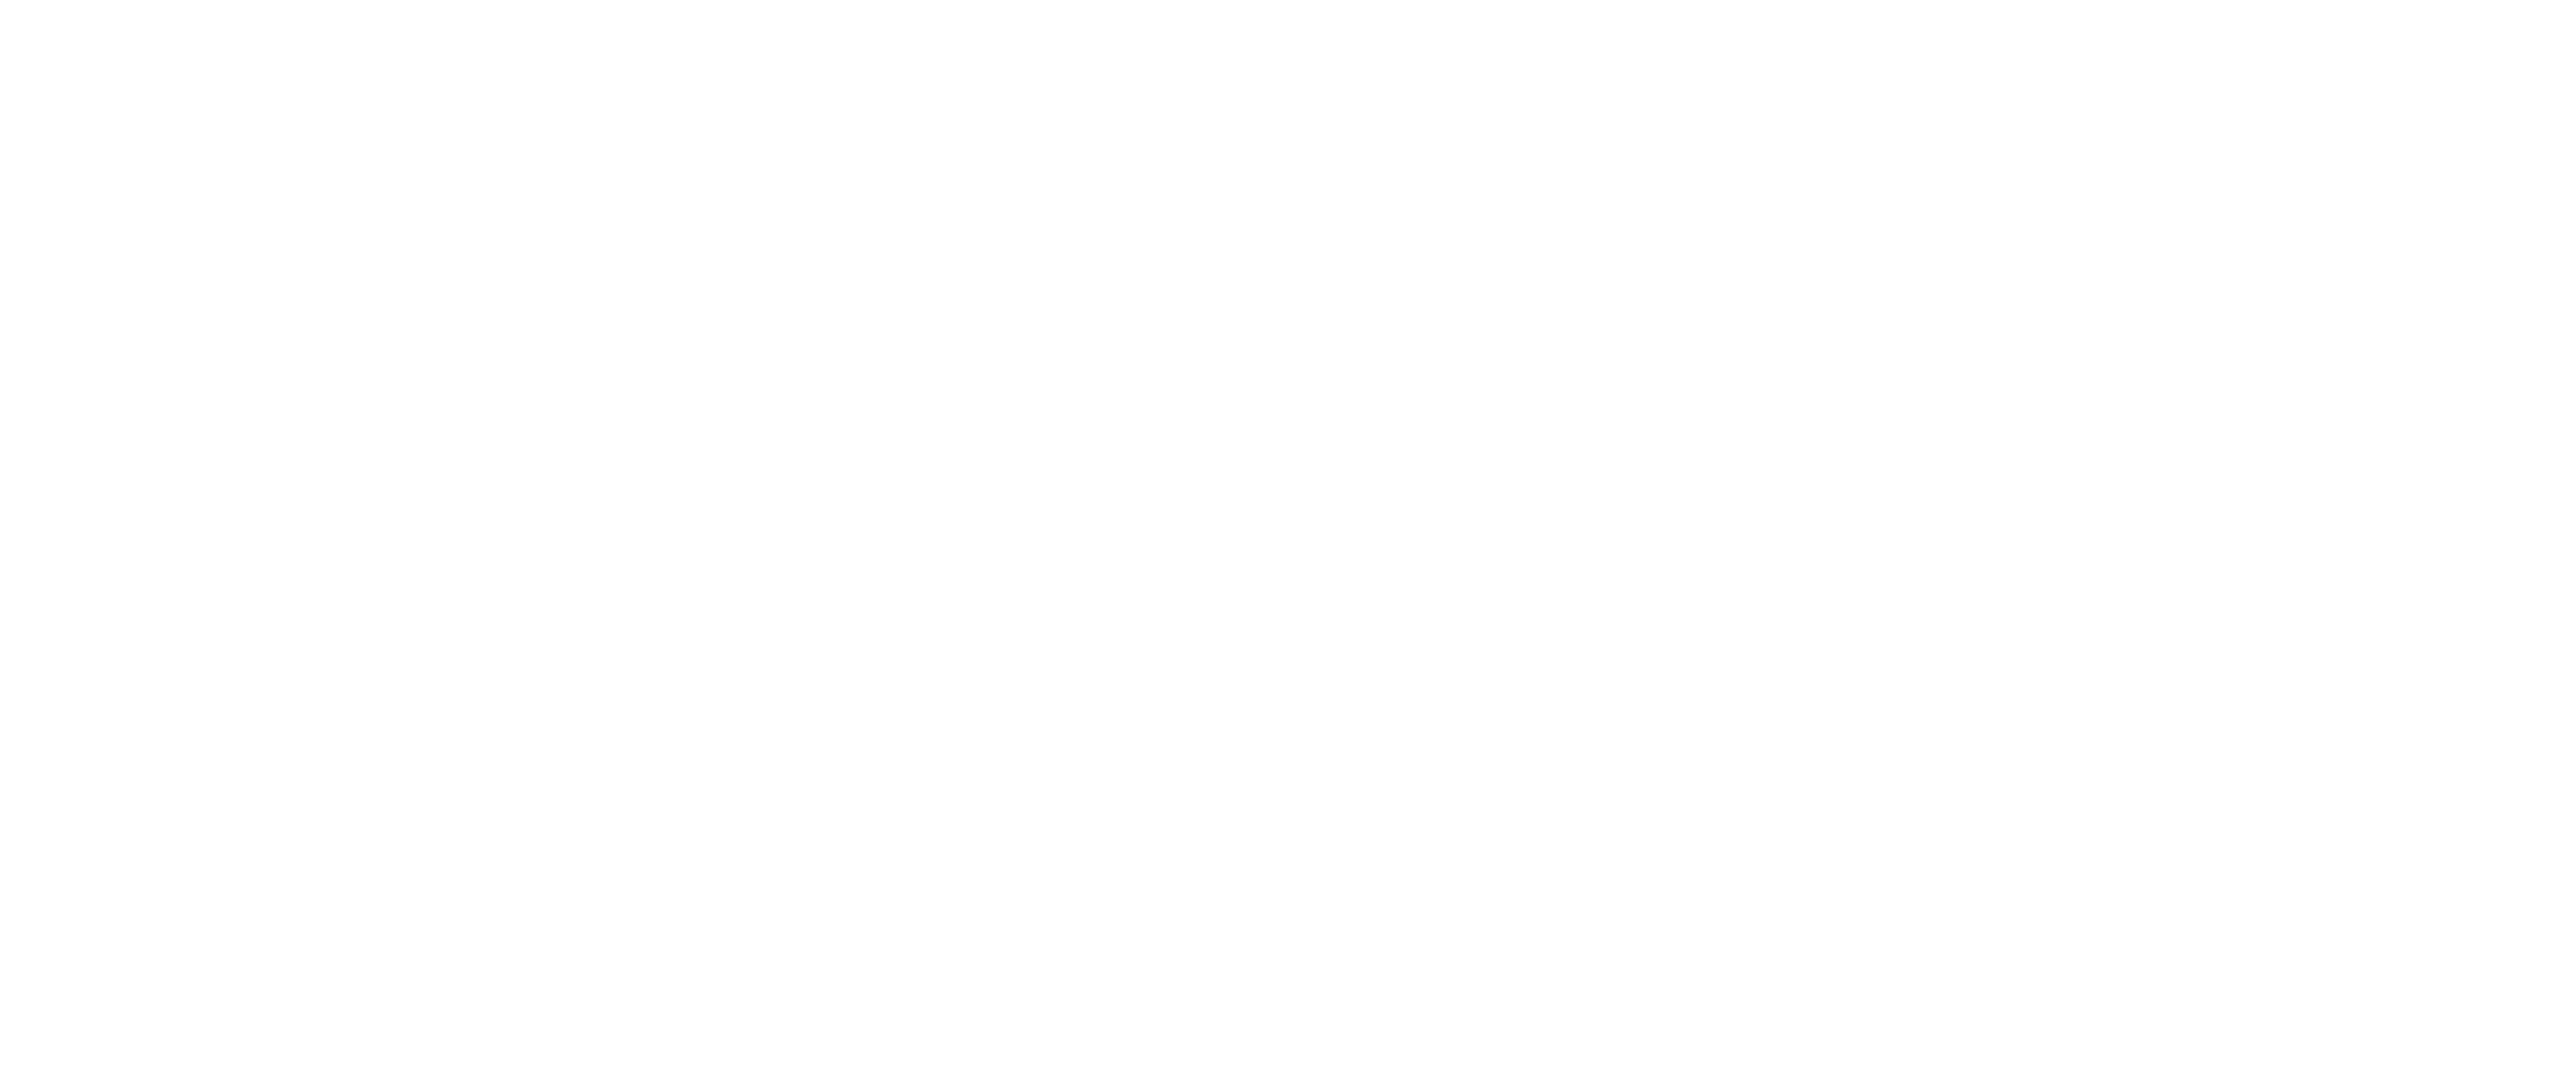 Valley Glass and Windows